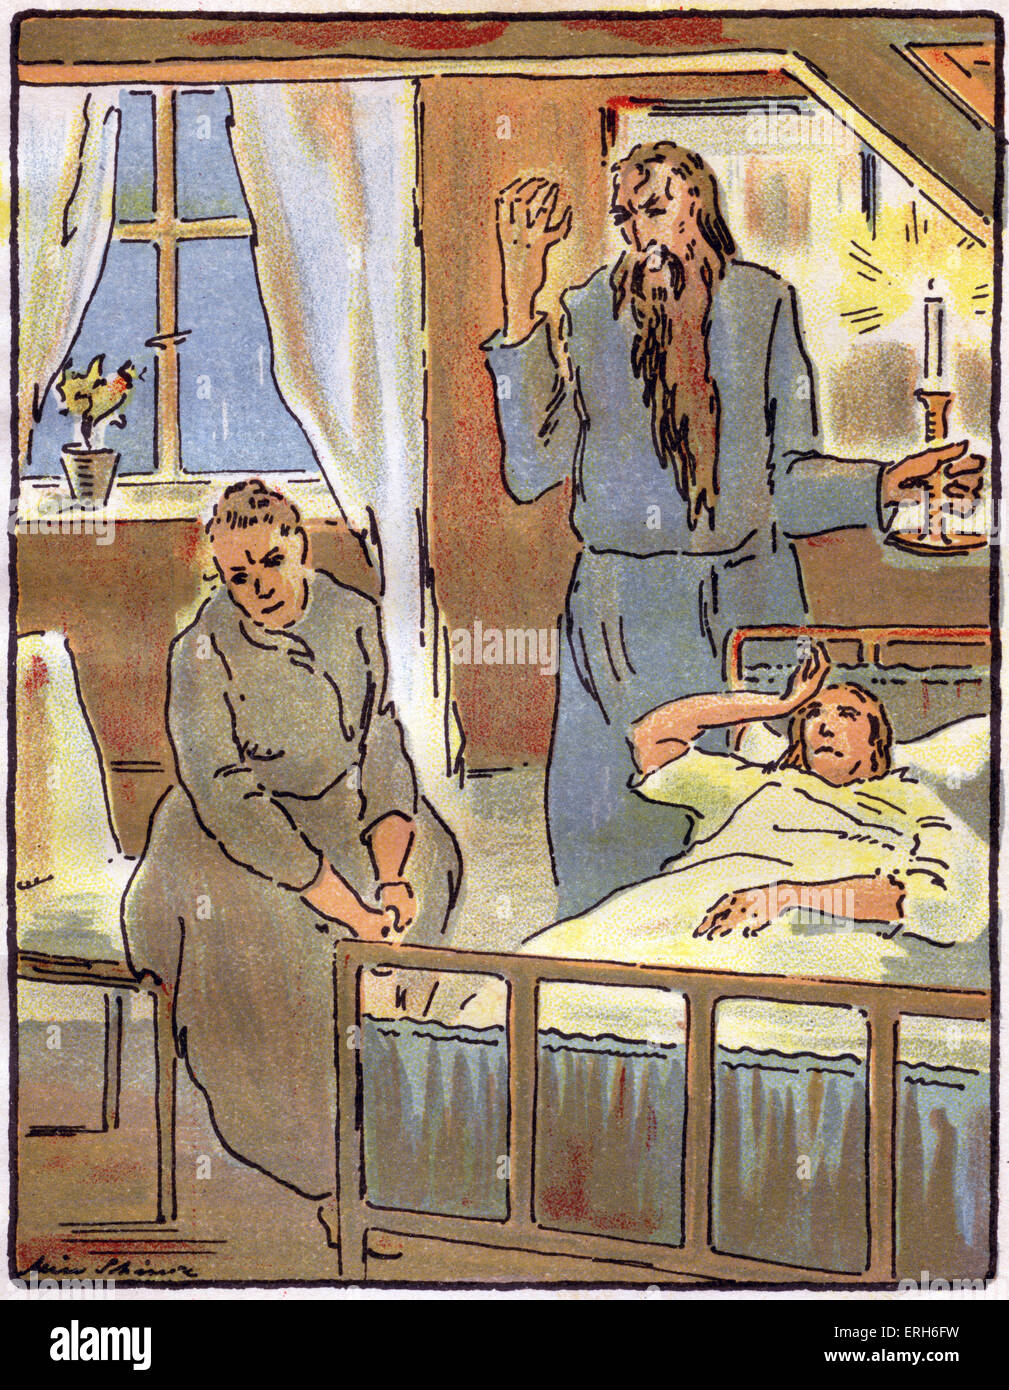 Das Schweigen (Silence) - novella by Leonid Andreyev, c. 1924.  Illustrated with lithographs by Alice Schimz.   - Stock Image